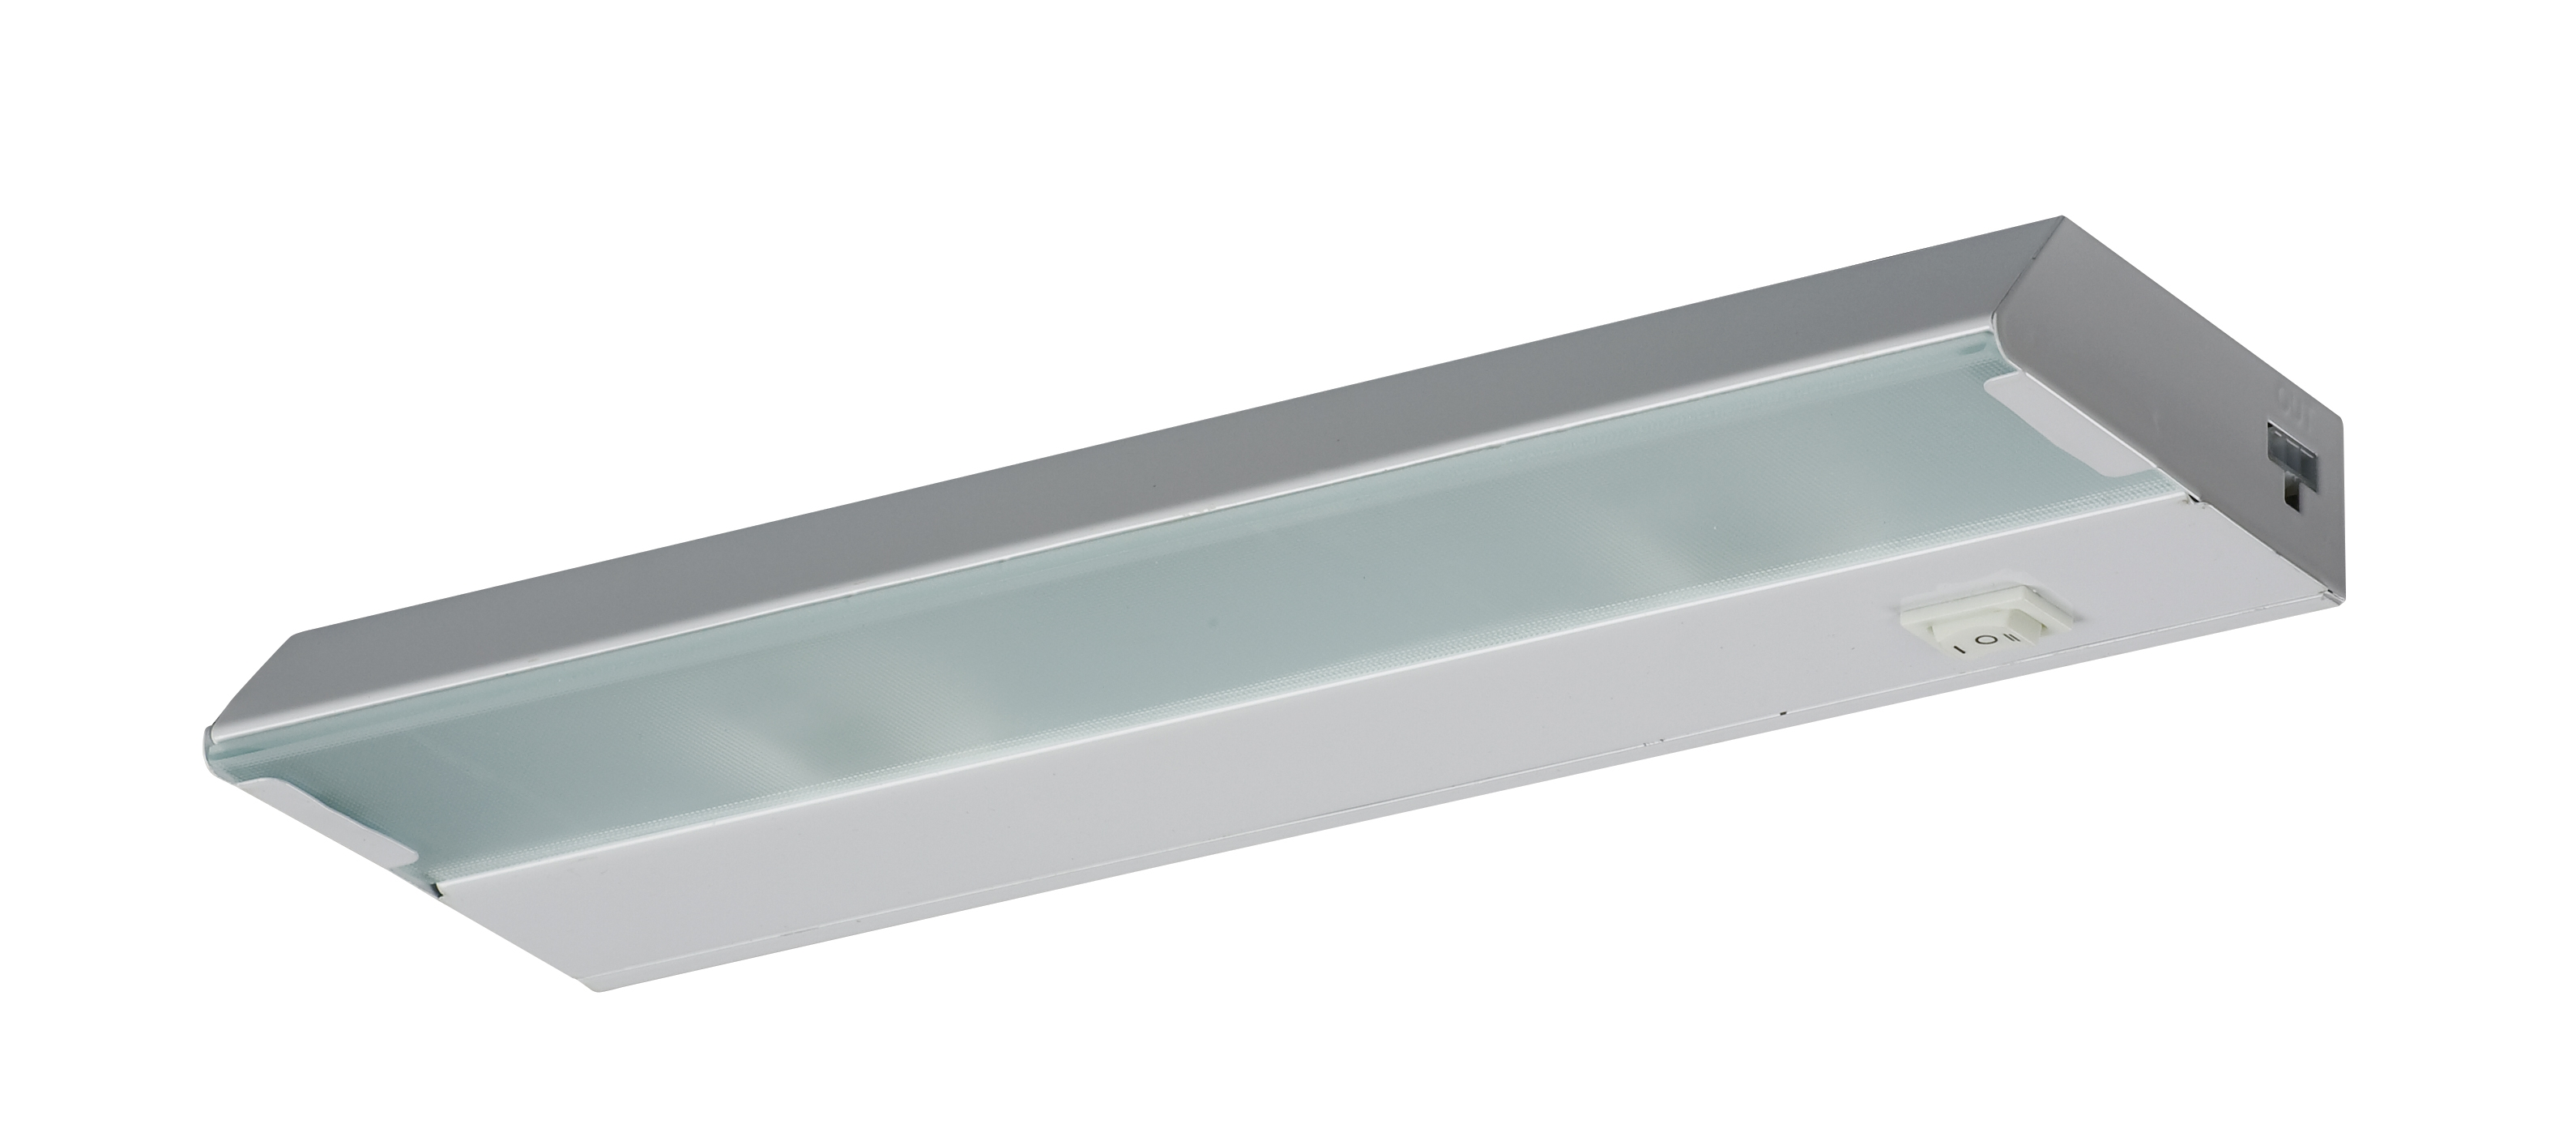 American Fluorescent Introduces LED Dimmable Under Cabinet Lighting